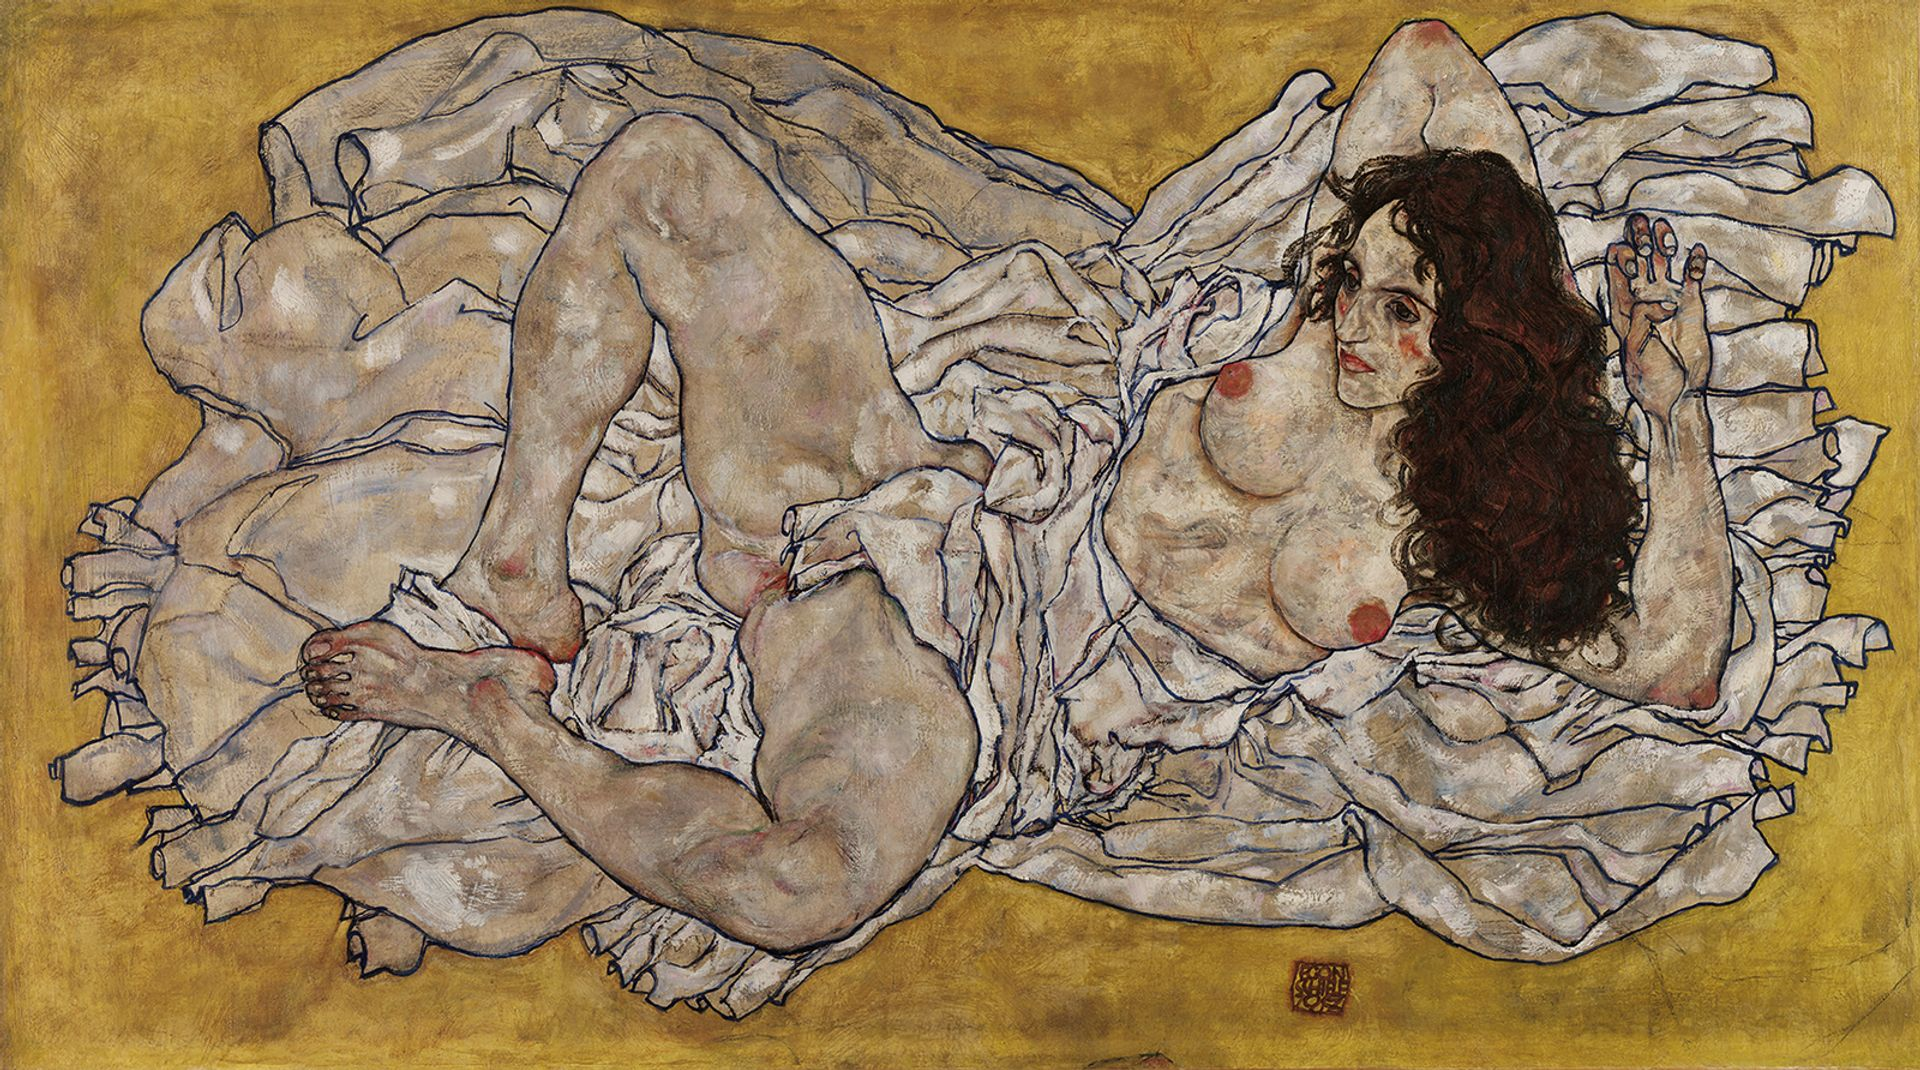 Egon Schiele's Reclining Woman (1917) Leopold Museum/Manfred Thumberger